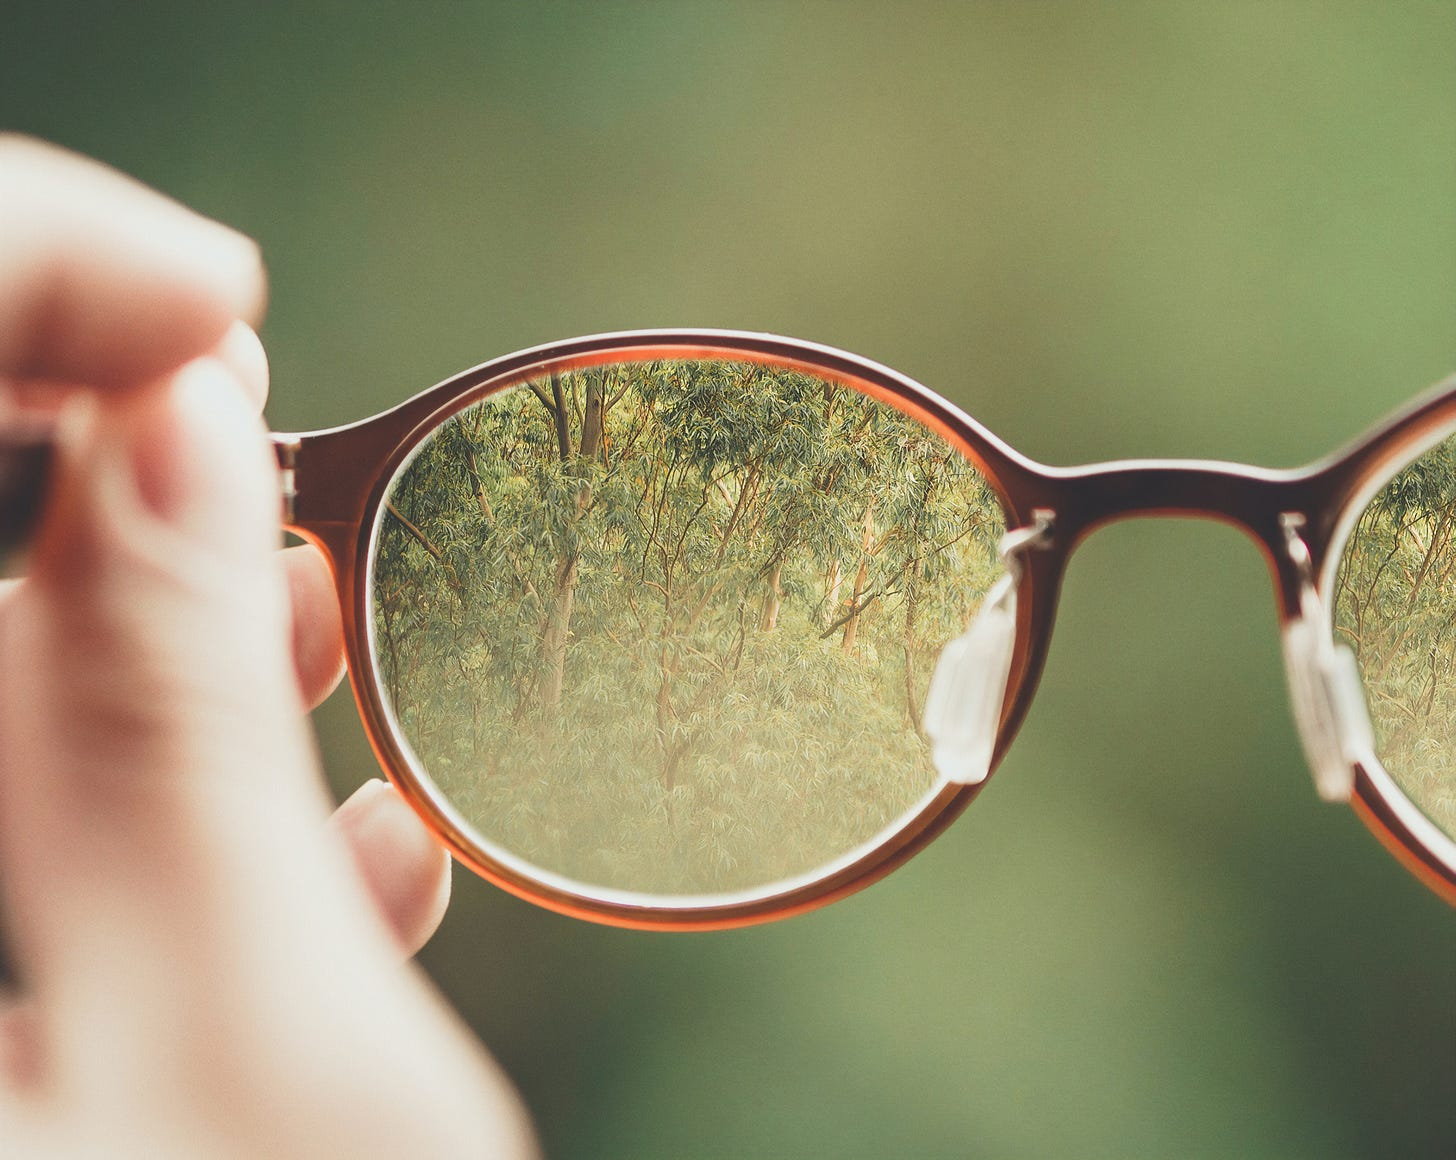 Photo of trees visible through a pair of glasses. Bud Helisson / Unsplash